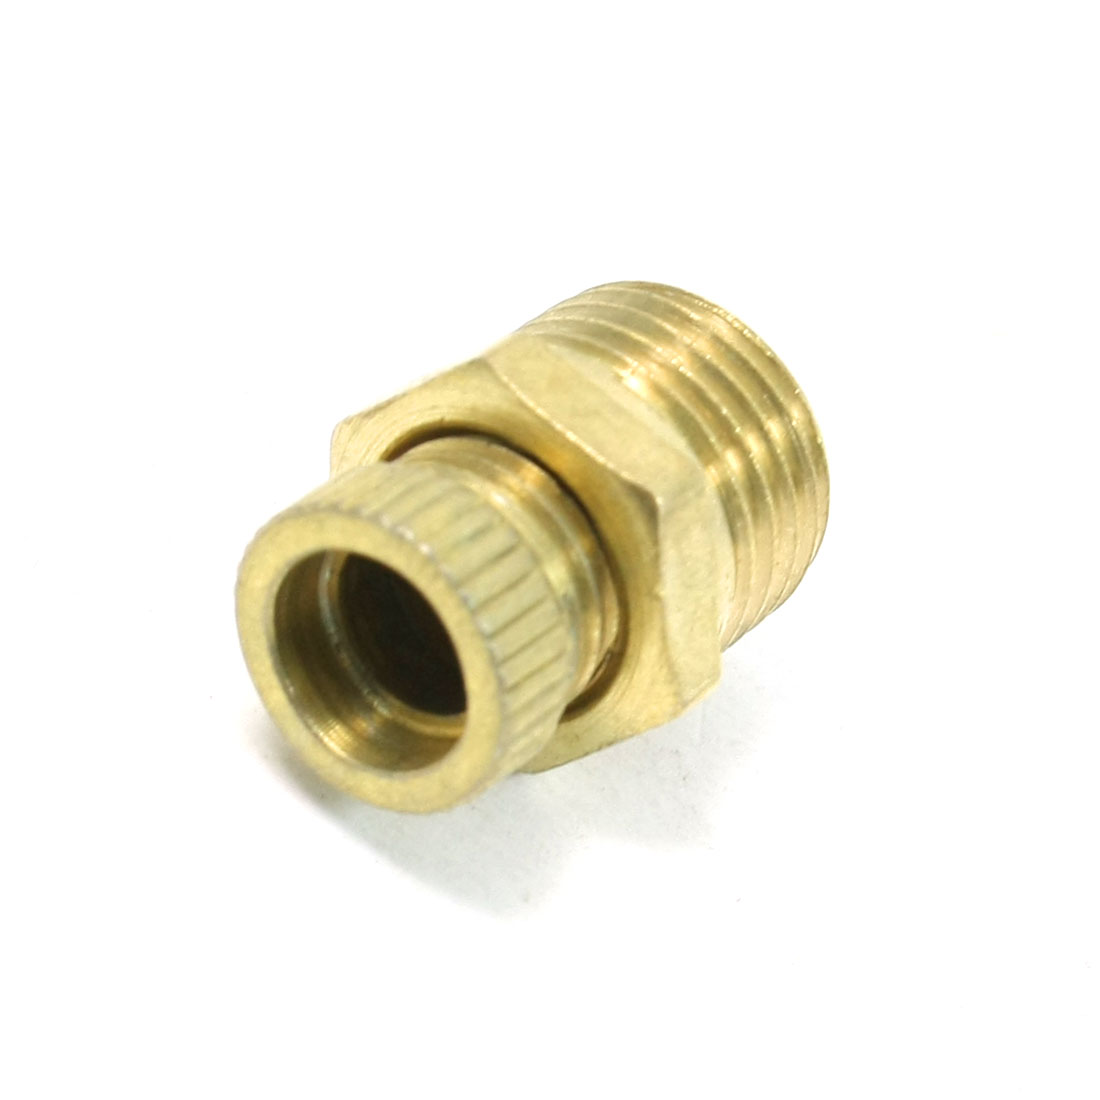 "Repair Parts 1/4"" Male Thread Water Valve for Air Compressor for Air Compressor"